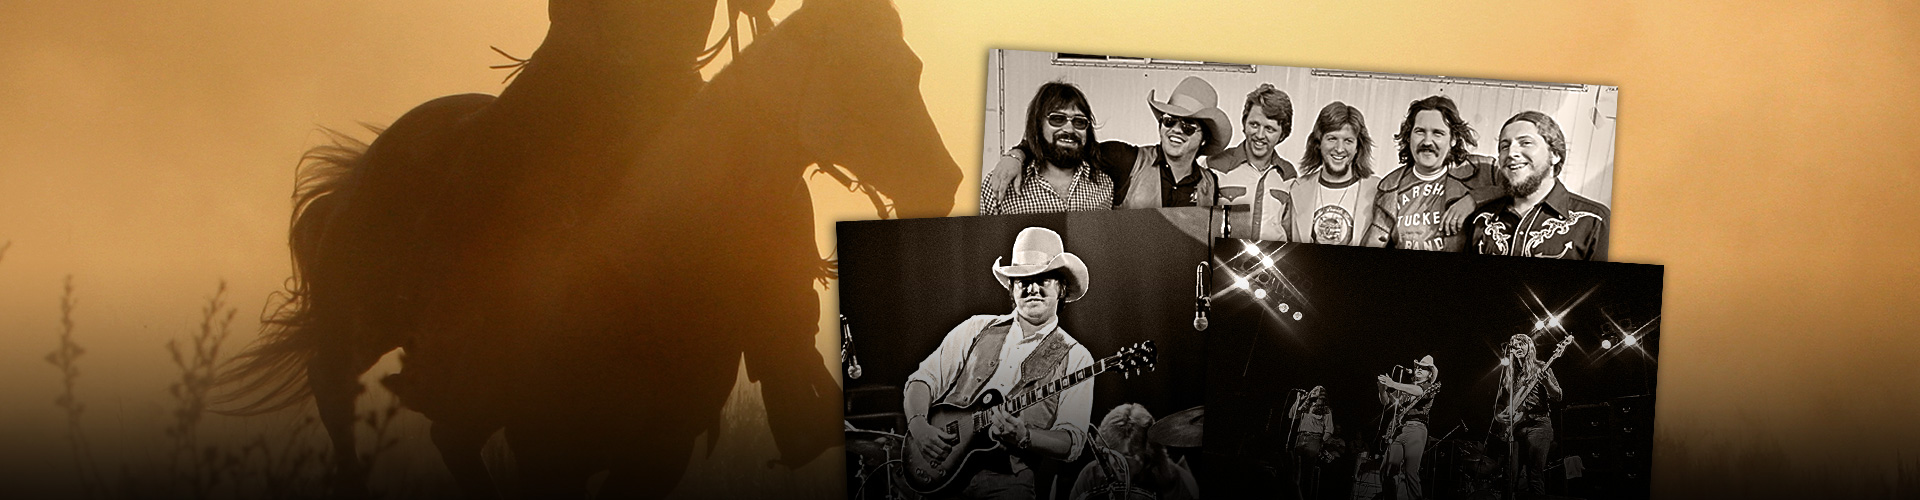 Discography | The Marshall Tucker Band